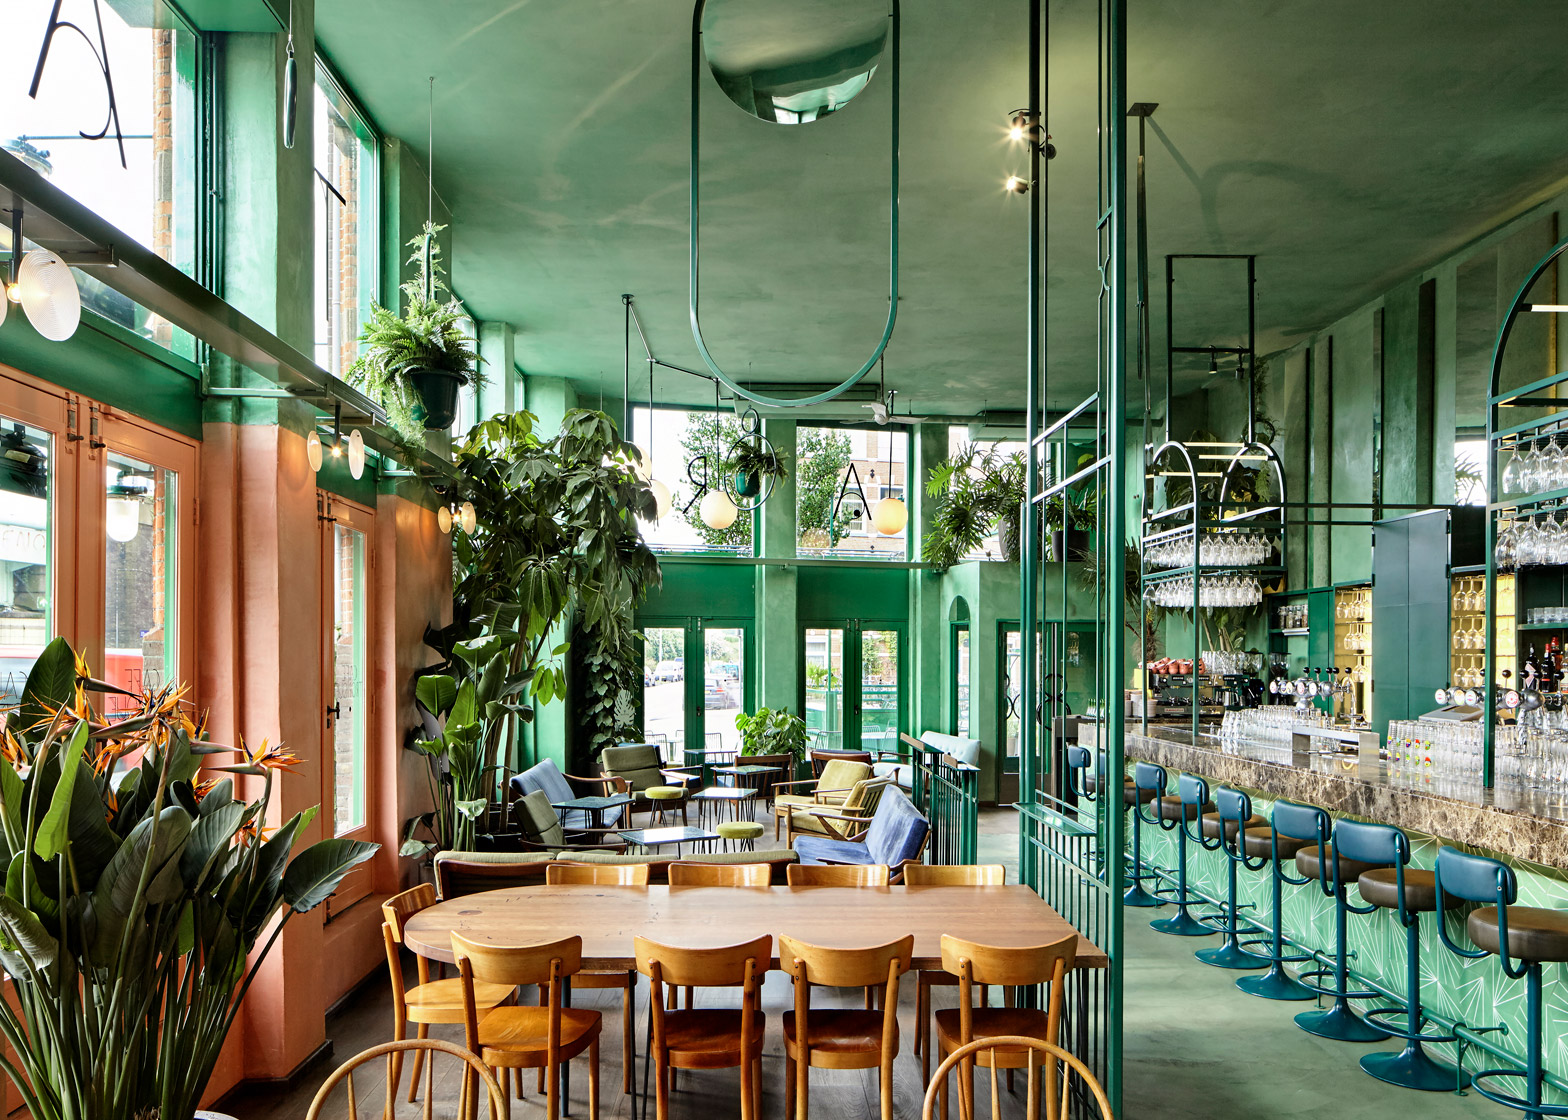 bar-botanique-studio-modijefsky-amsterdam-dutch-netherlands-green-forest-rainforest-tropical-foliage